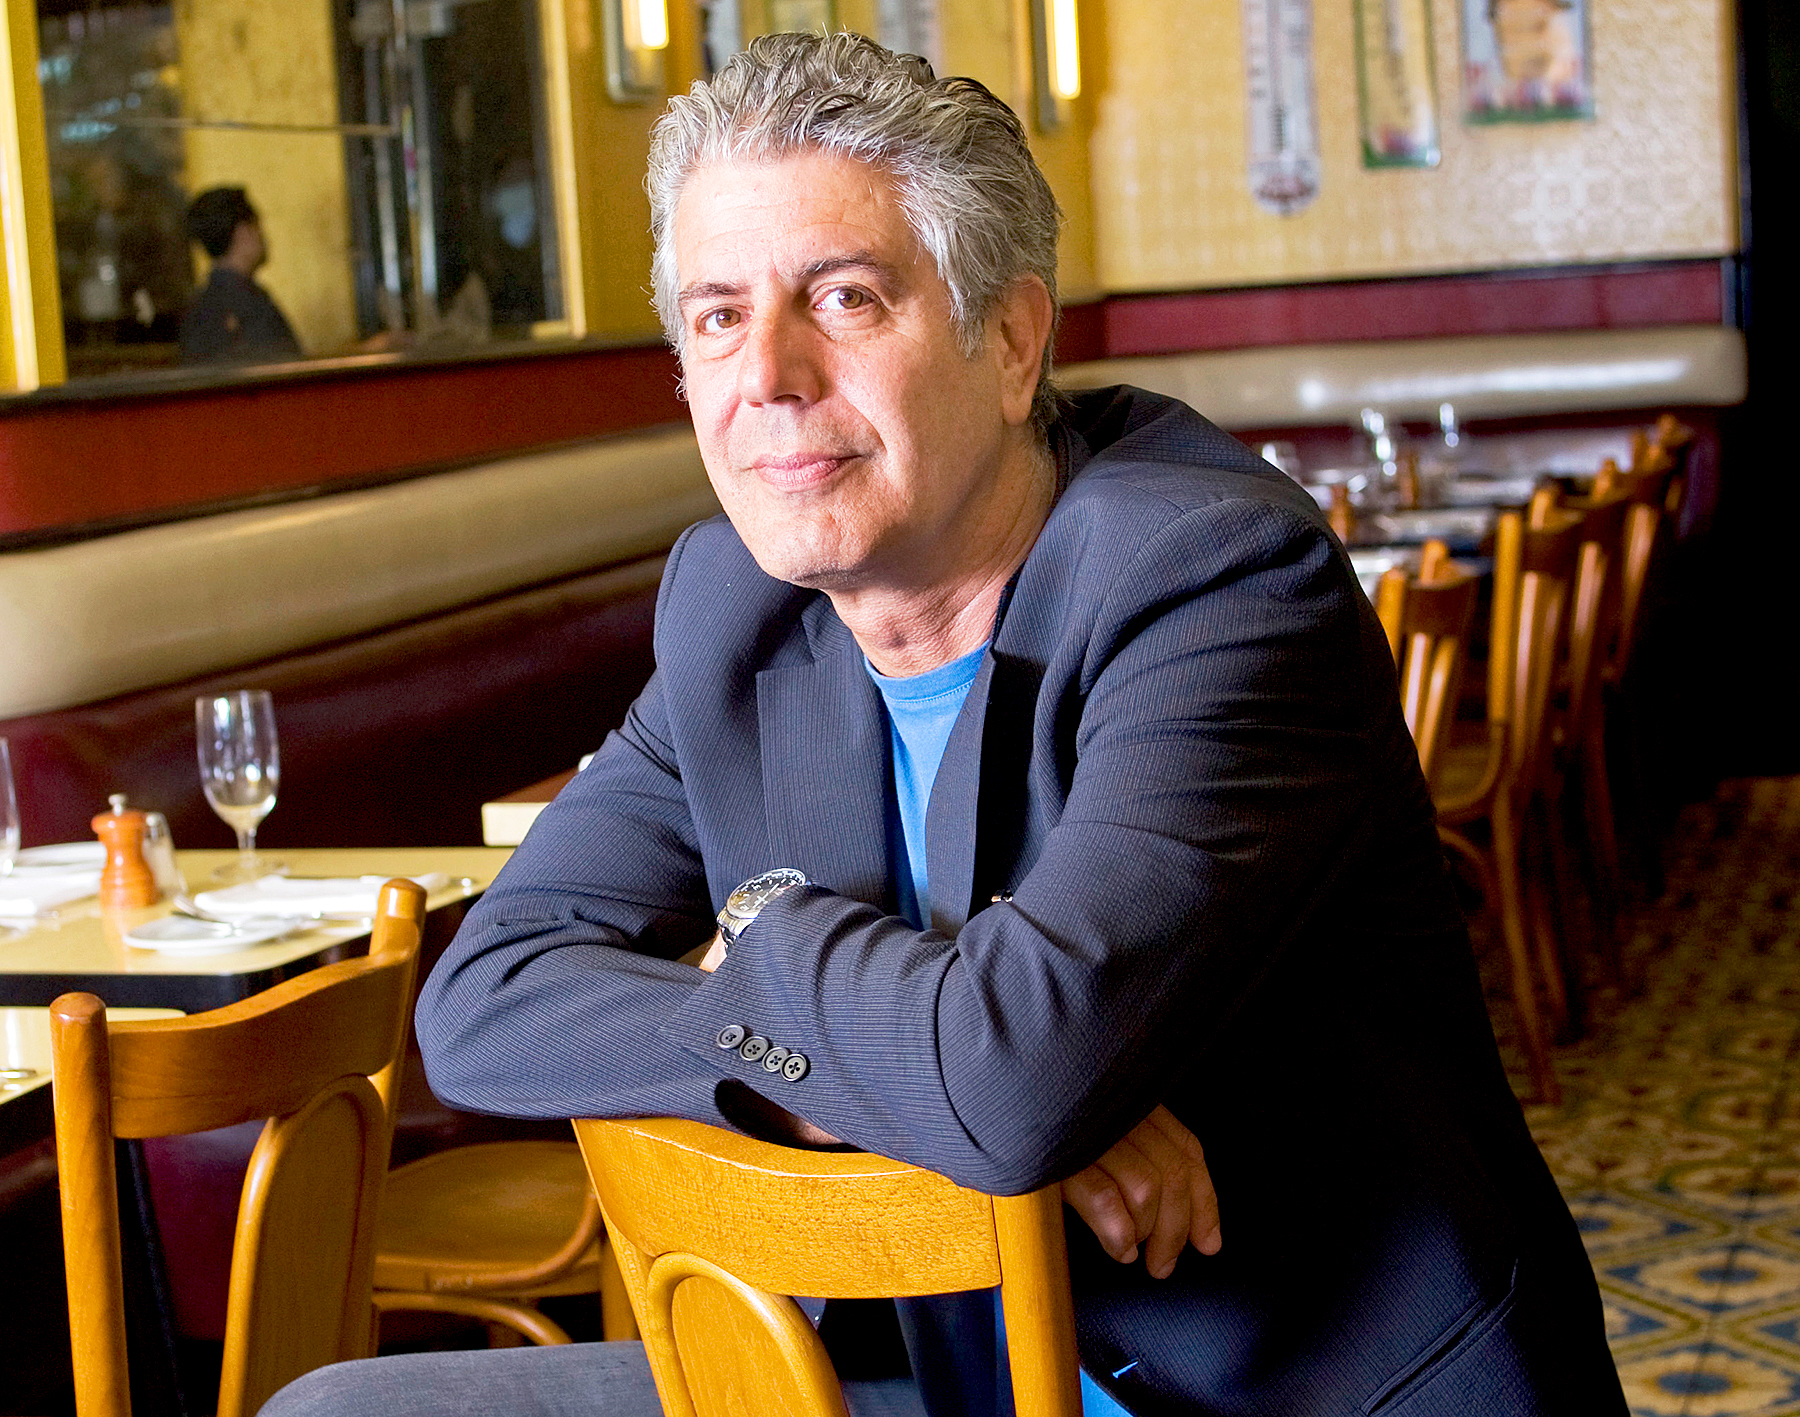 Bourdain leaves bulk of $1.2 million estate to 11-year-old daughter